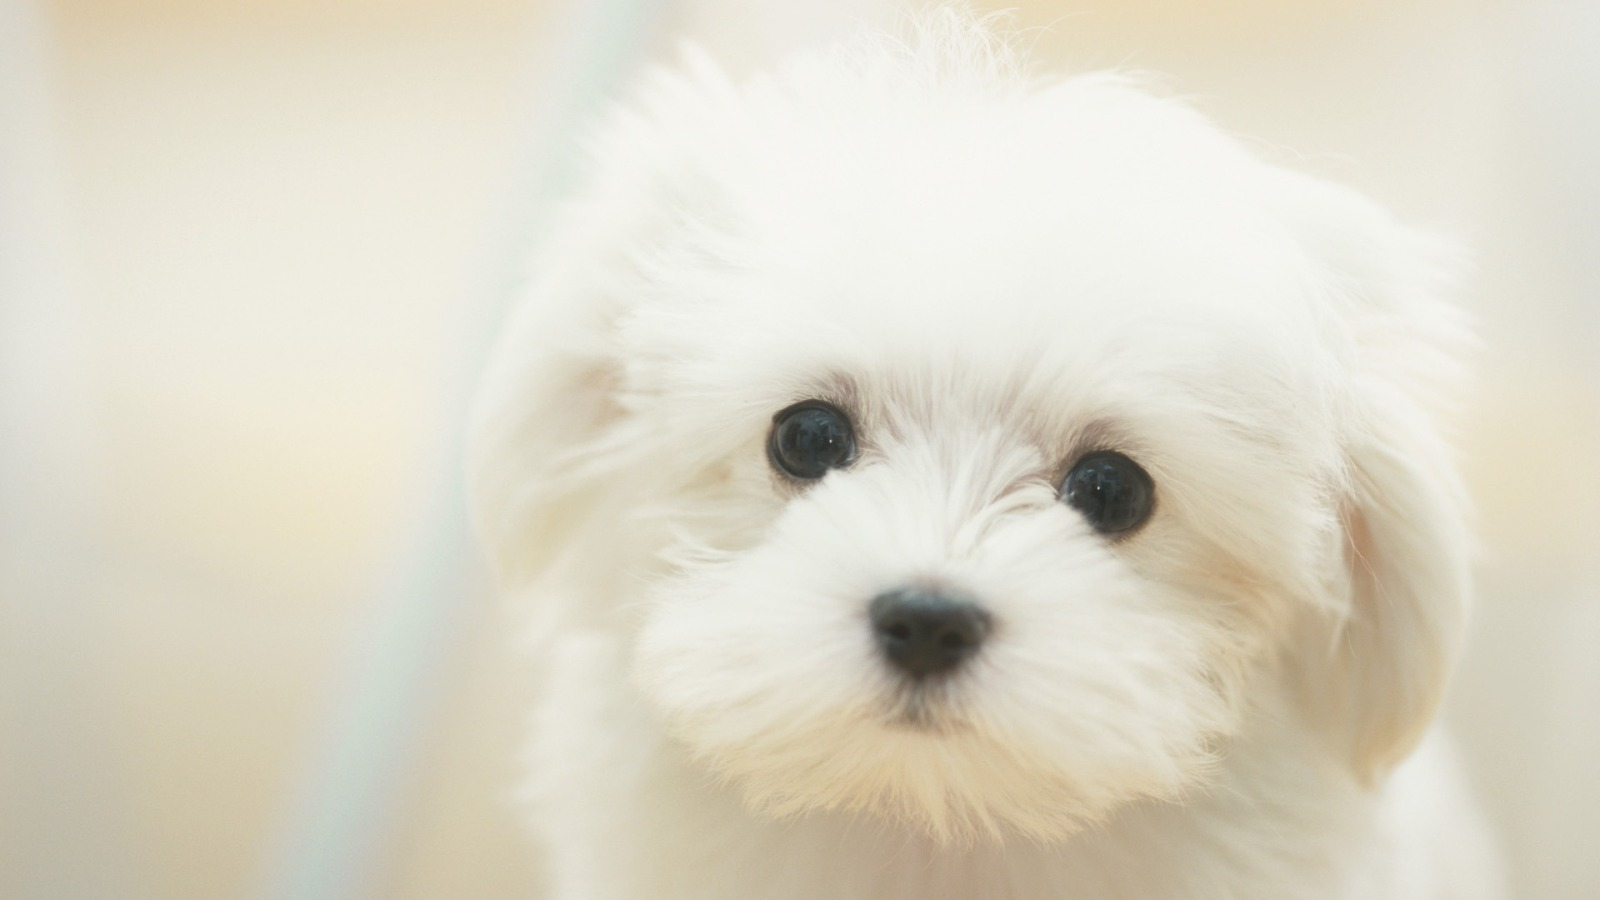 Cute Puppy Wallpaper Wallpapers Gallery 1600x900